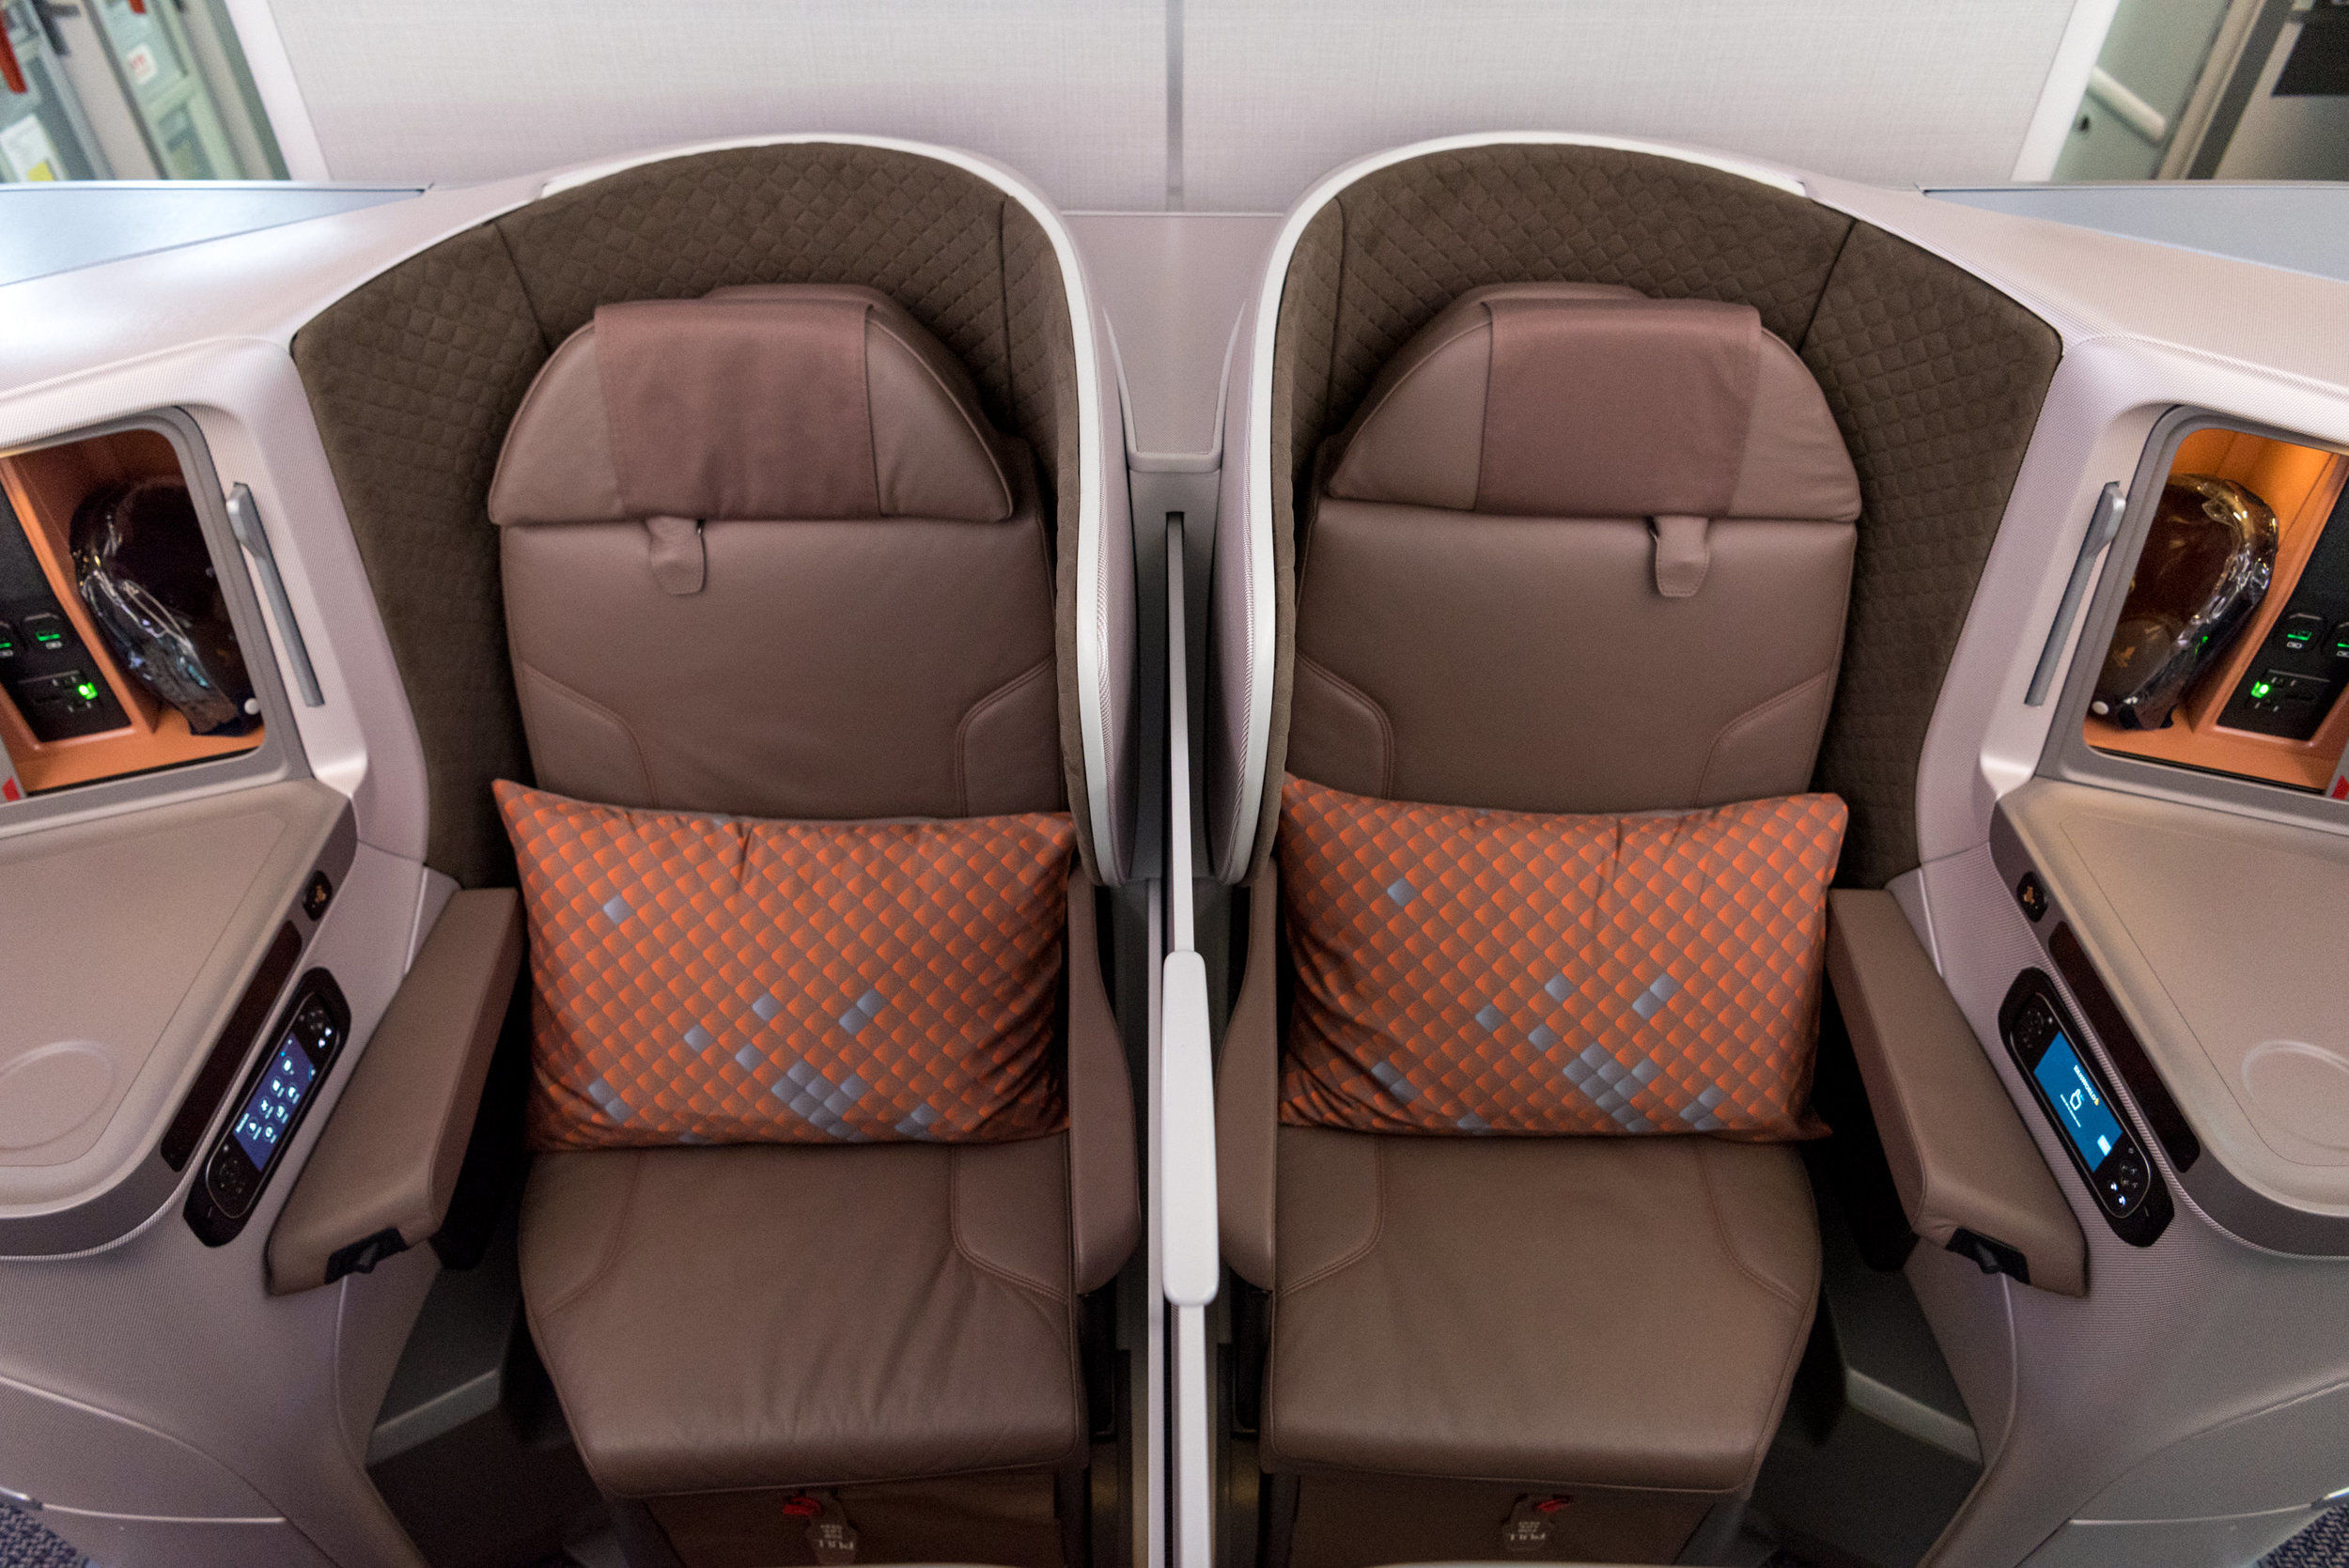 Middle Partition for Alternate Middle Seats  New Regional Business Class (2018) - Singapore Airlines